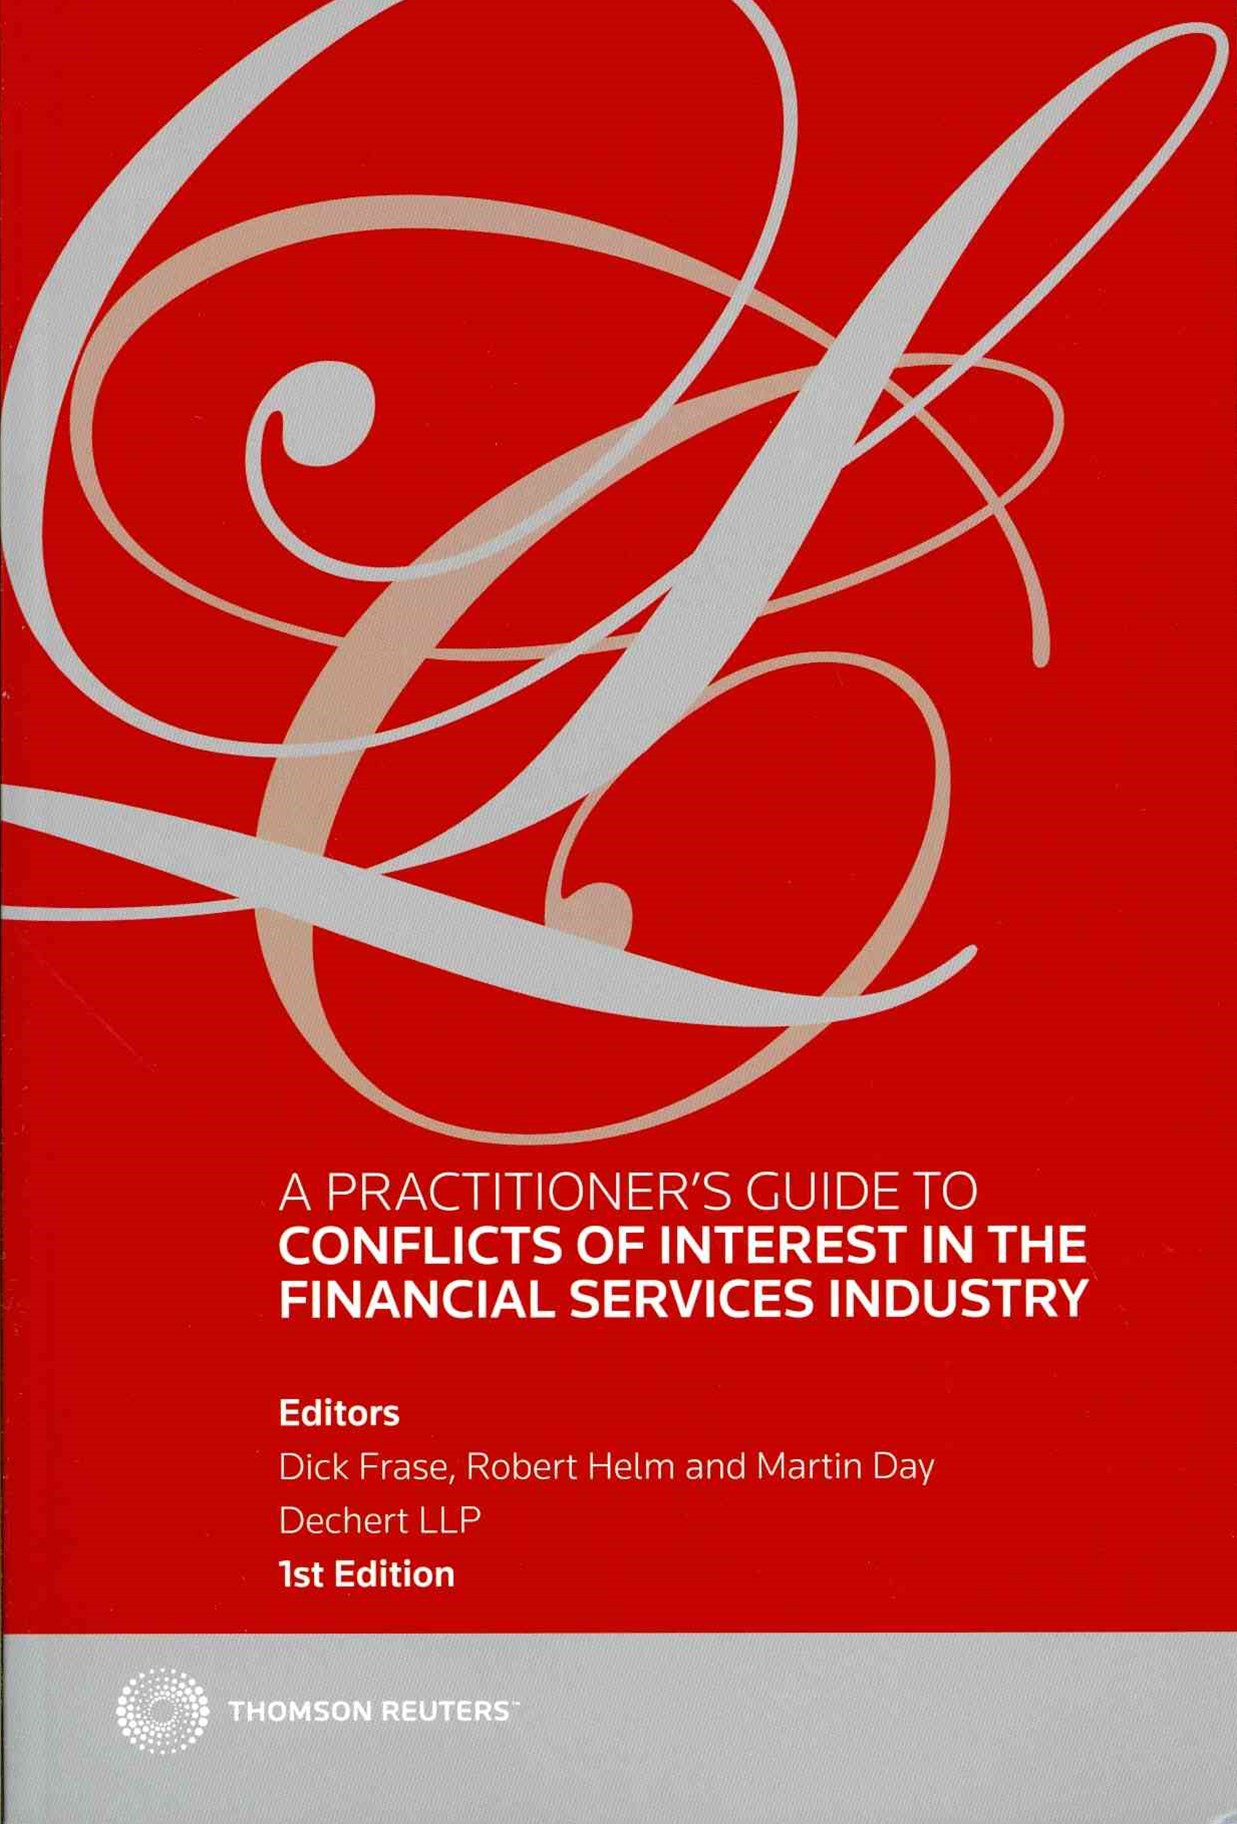 Practitioner's Guide to Conflicts of Interest in the Financial Services Industry